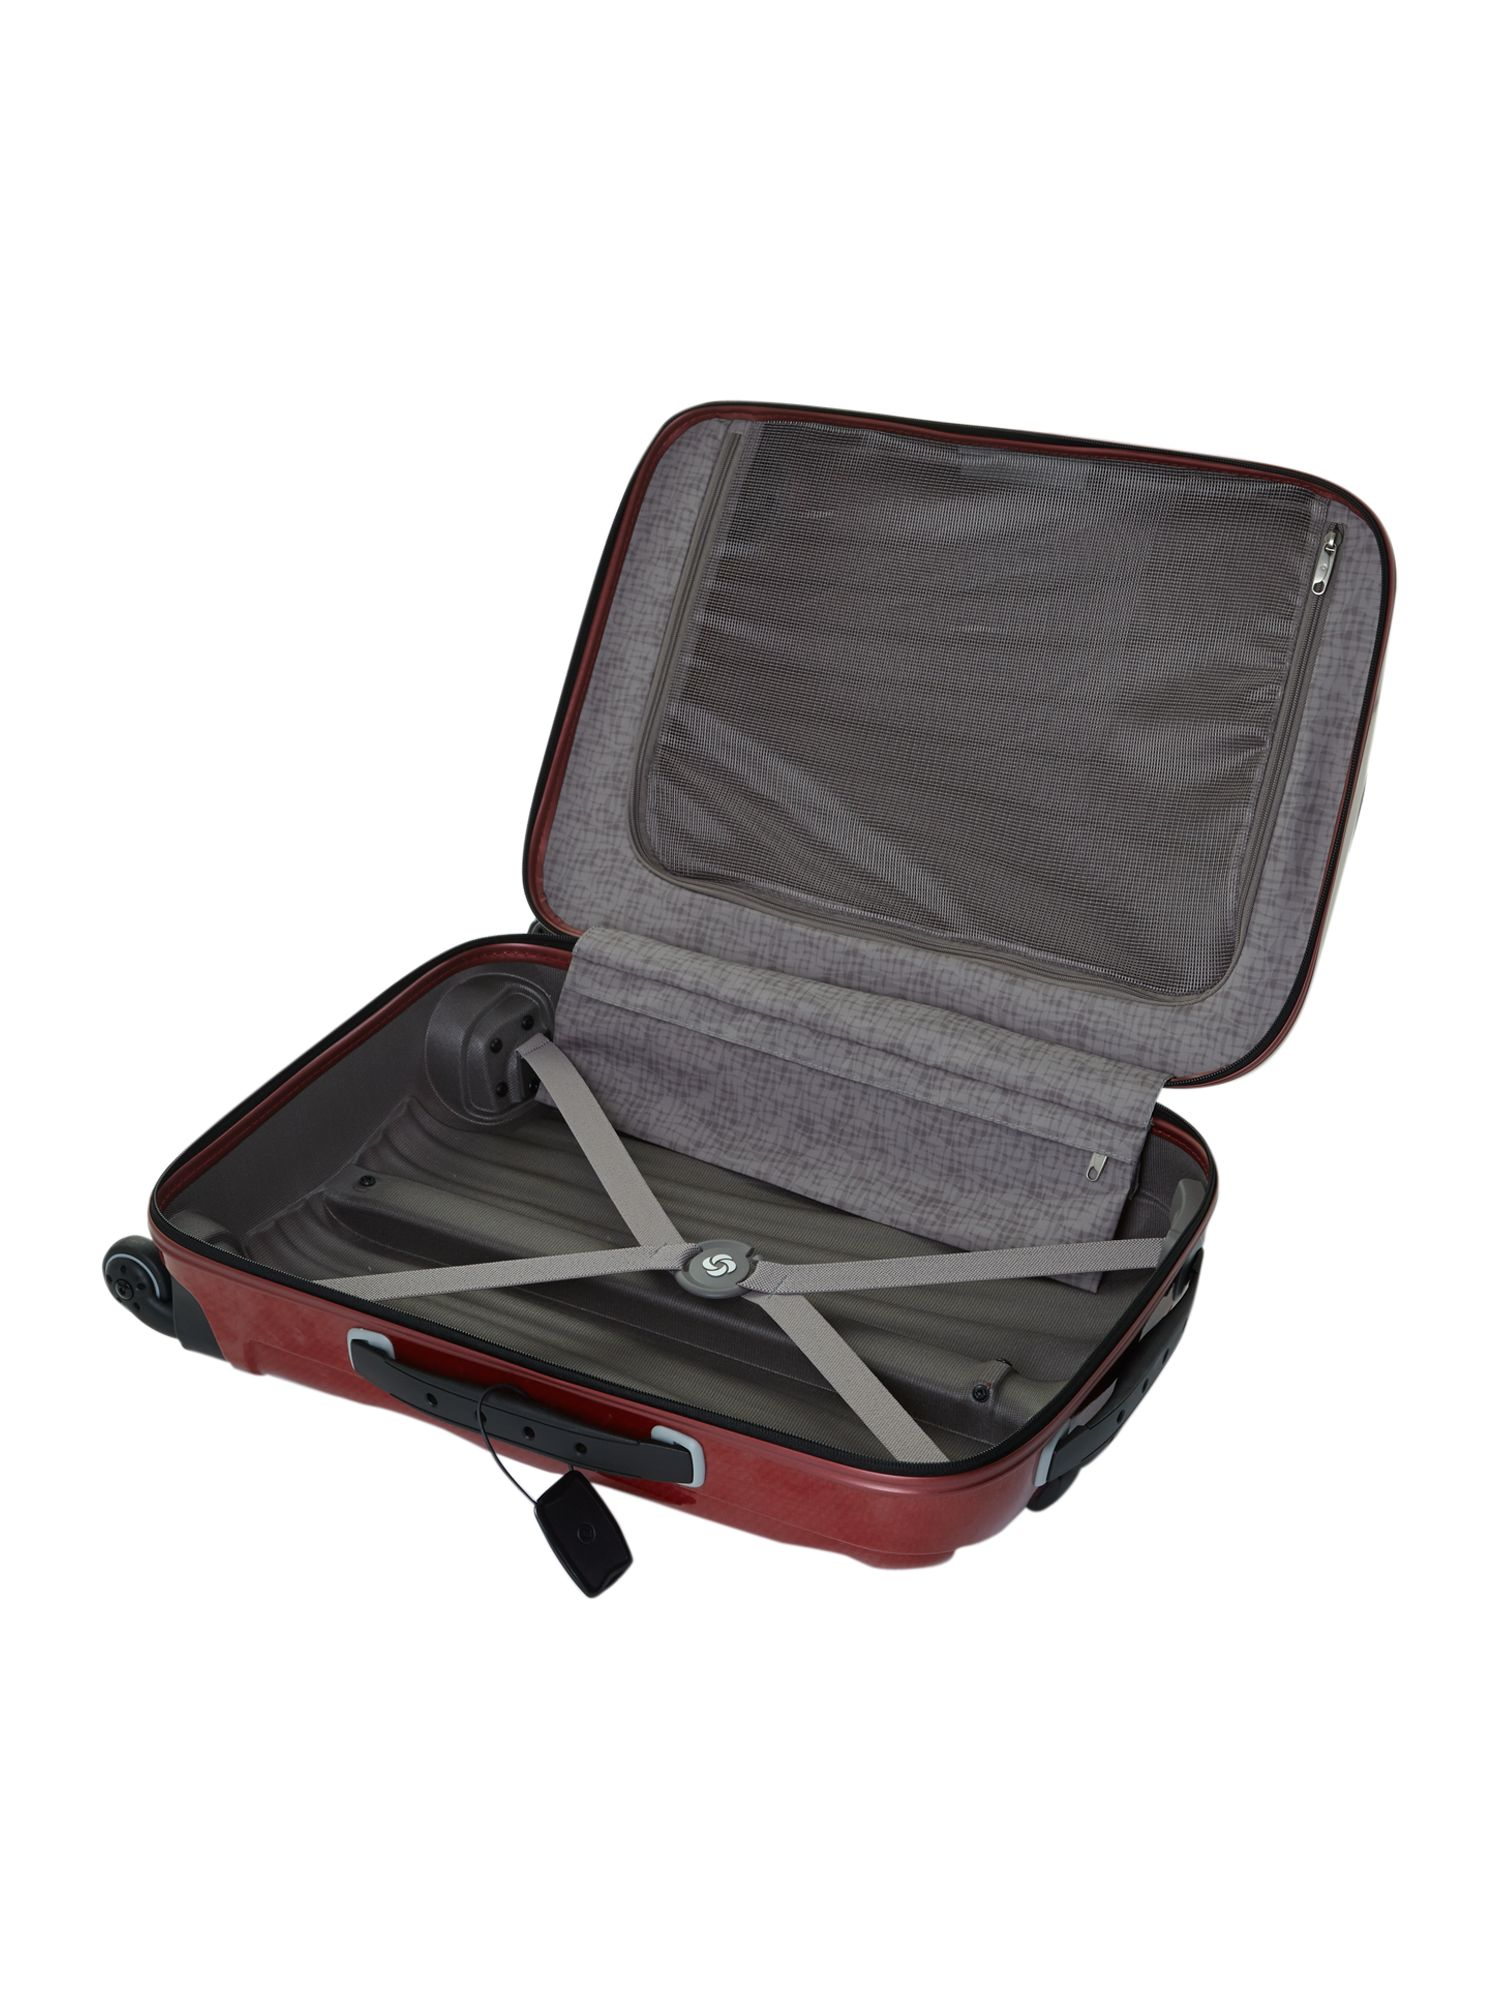 New cosmolite 4-wheel red cabin suitcase